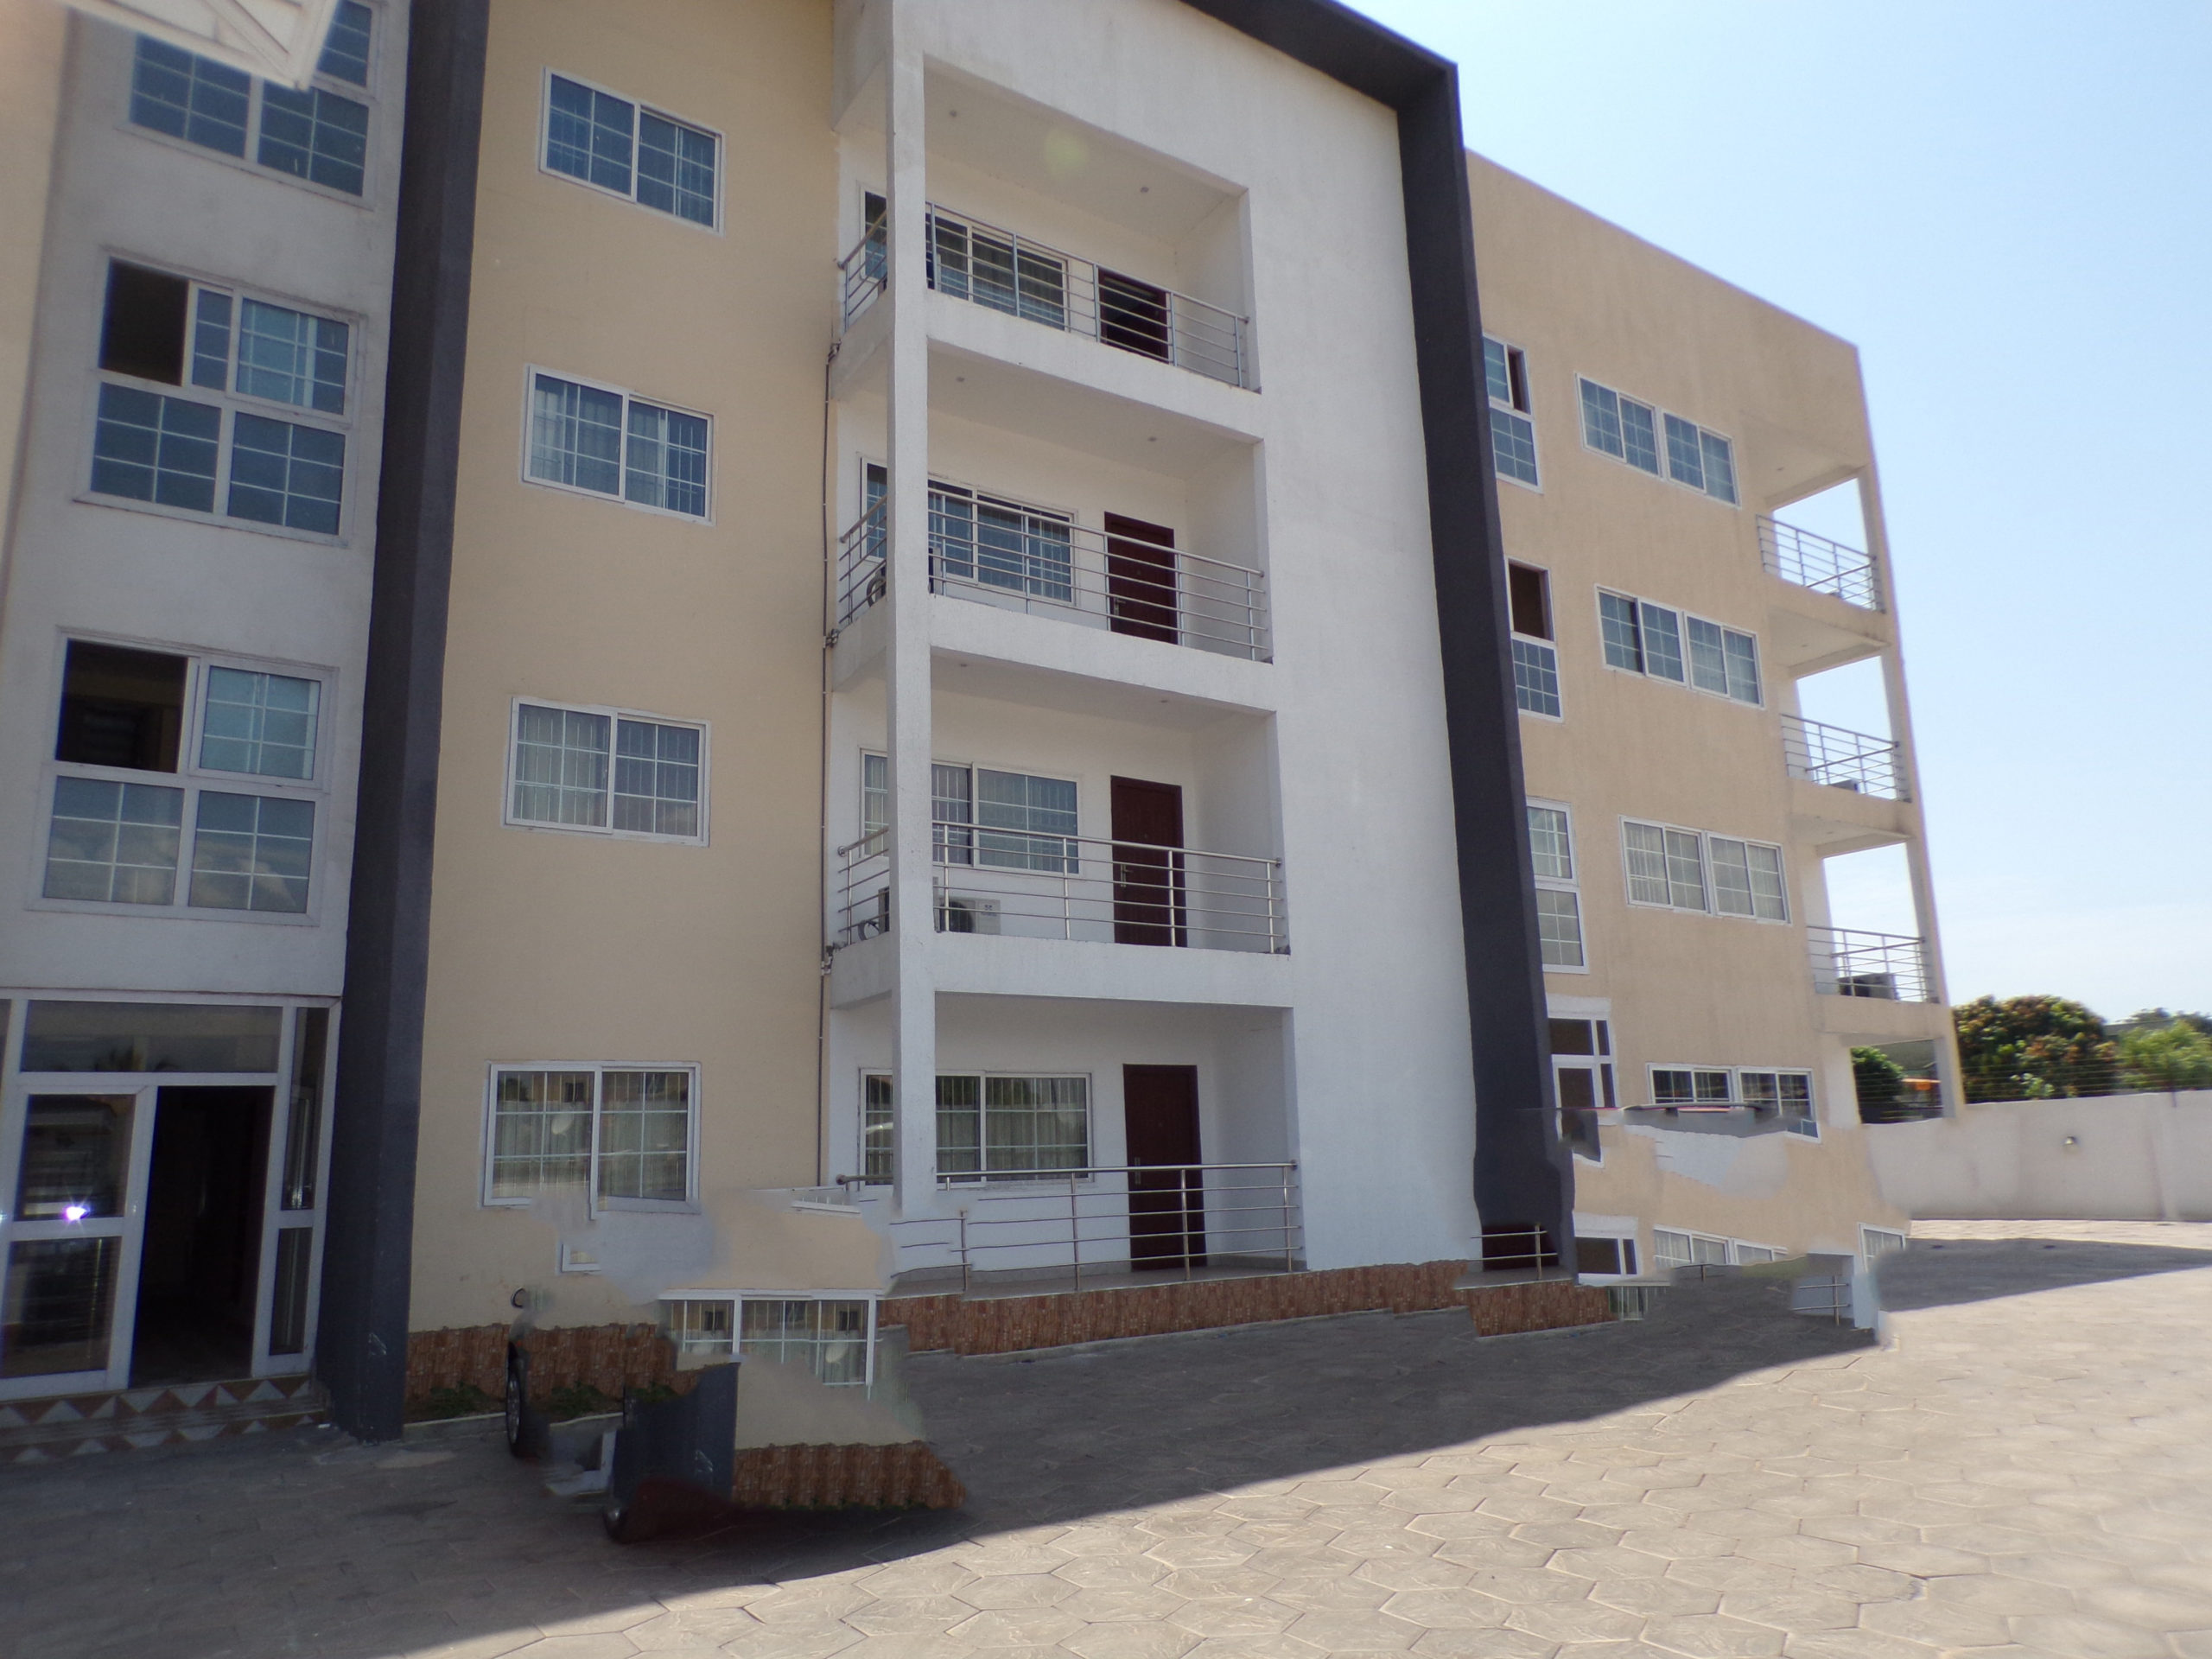 3 bedroom furnished apartment for rent in East Legon